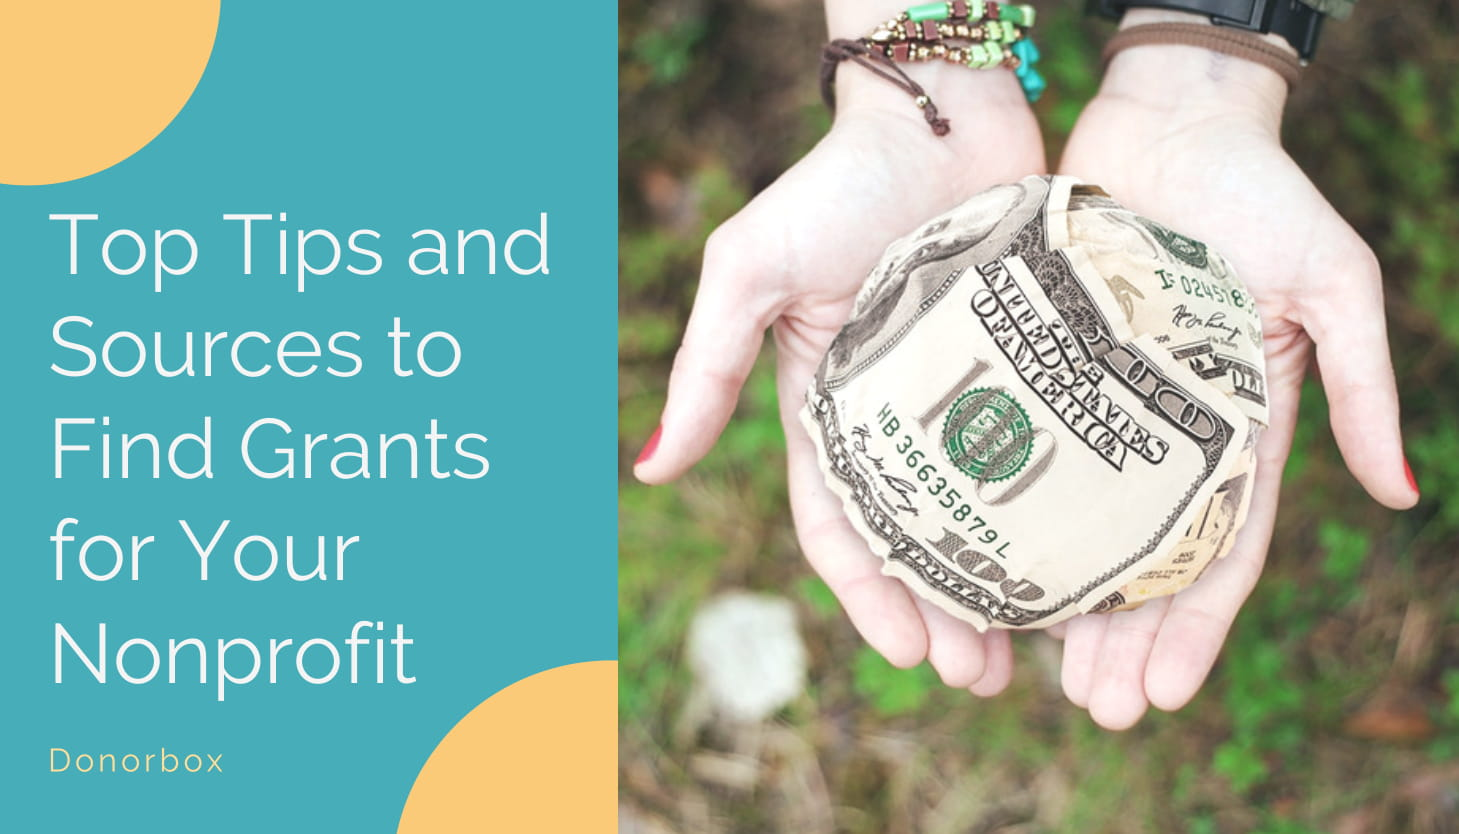 Top Tips and Sources to Find Grants for Your Nonprofit